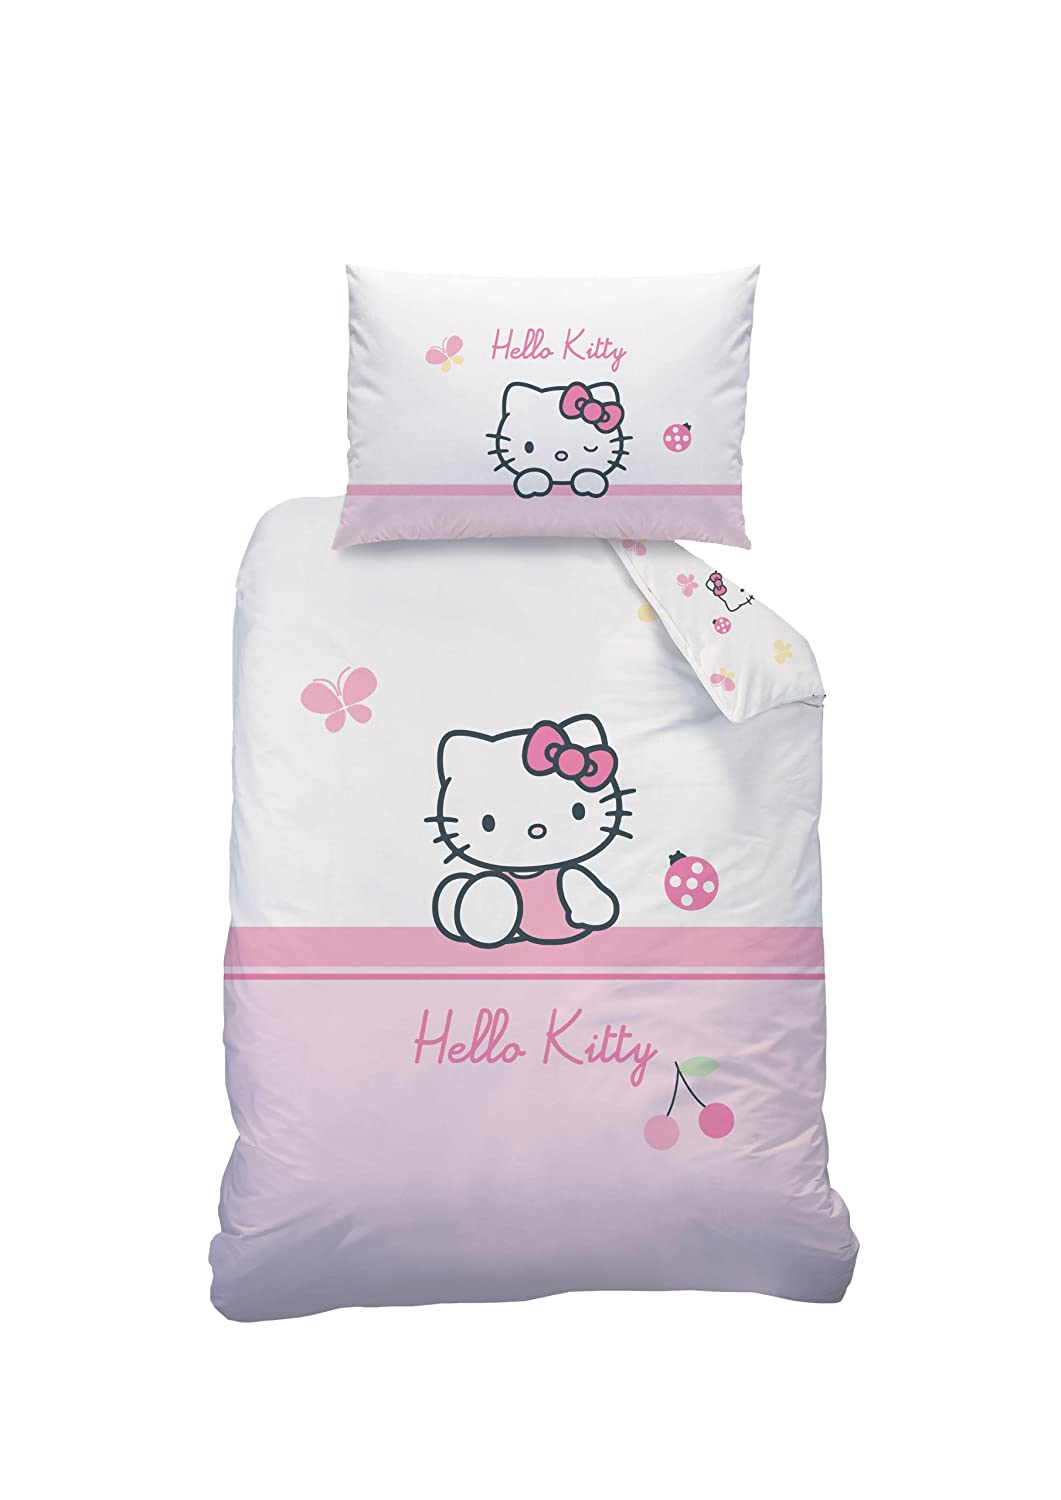 Hello Kitty Baby-Bettwäsche 100 x 135 + 40 x 60 cm